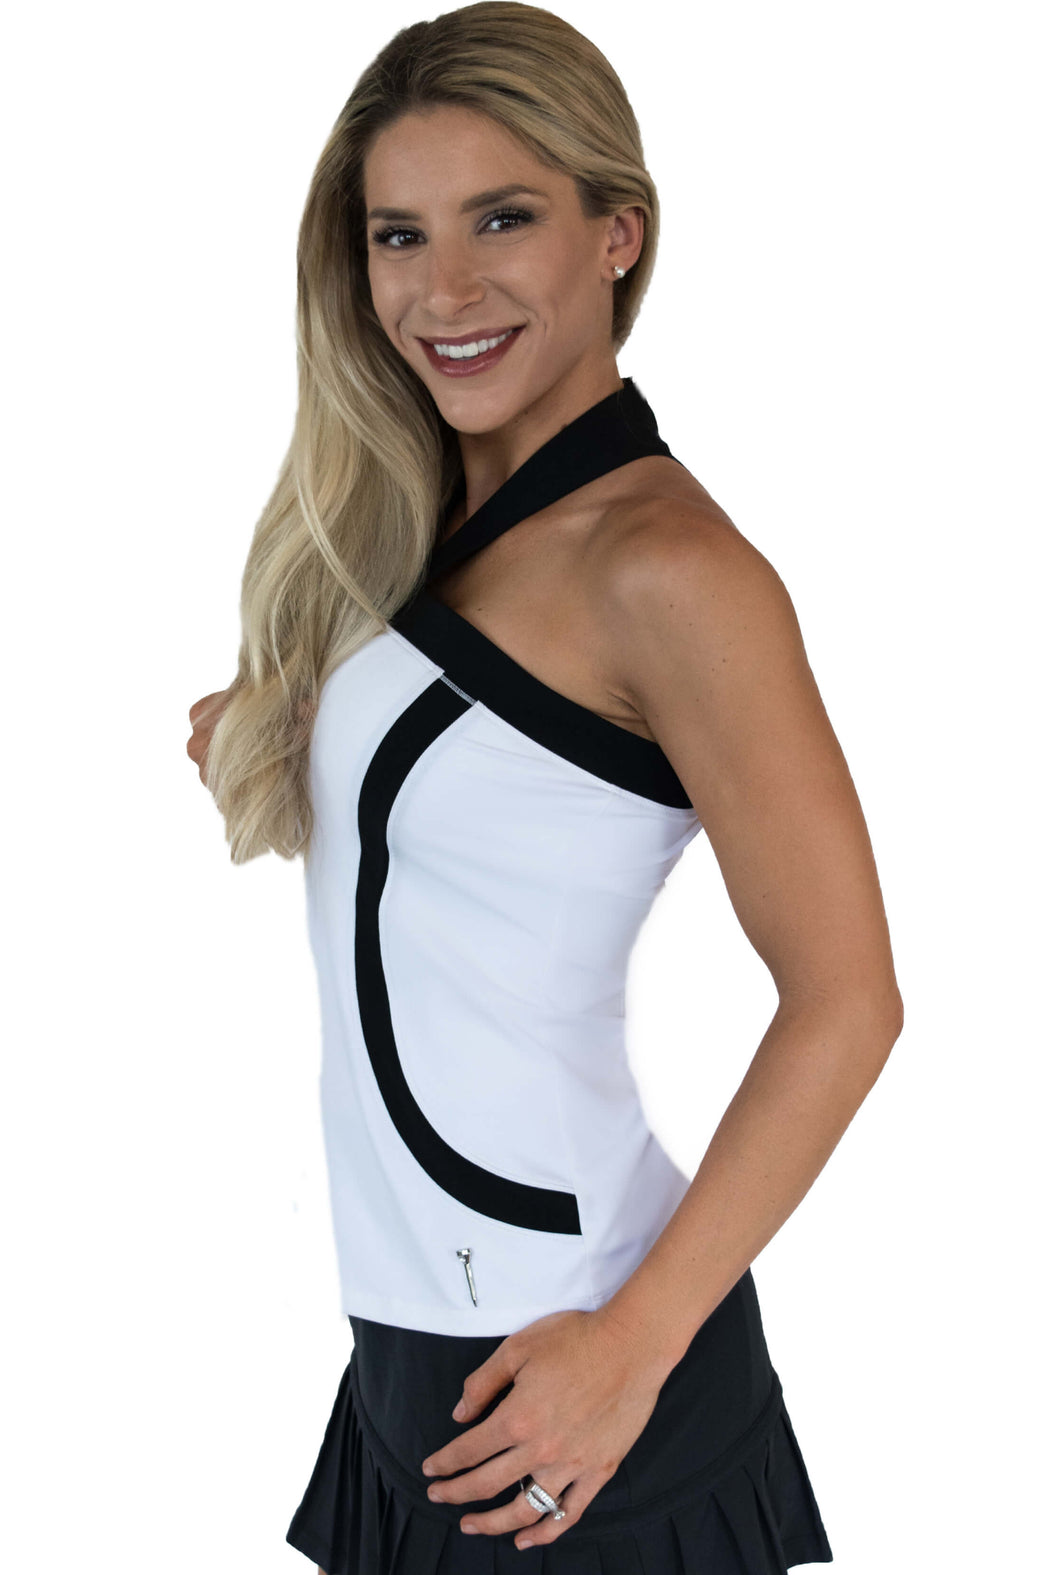 NEW! Contrast Curves Racerback Golf Polo - White with Black Curves - FlirTee Golf